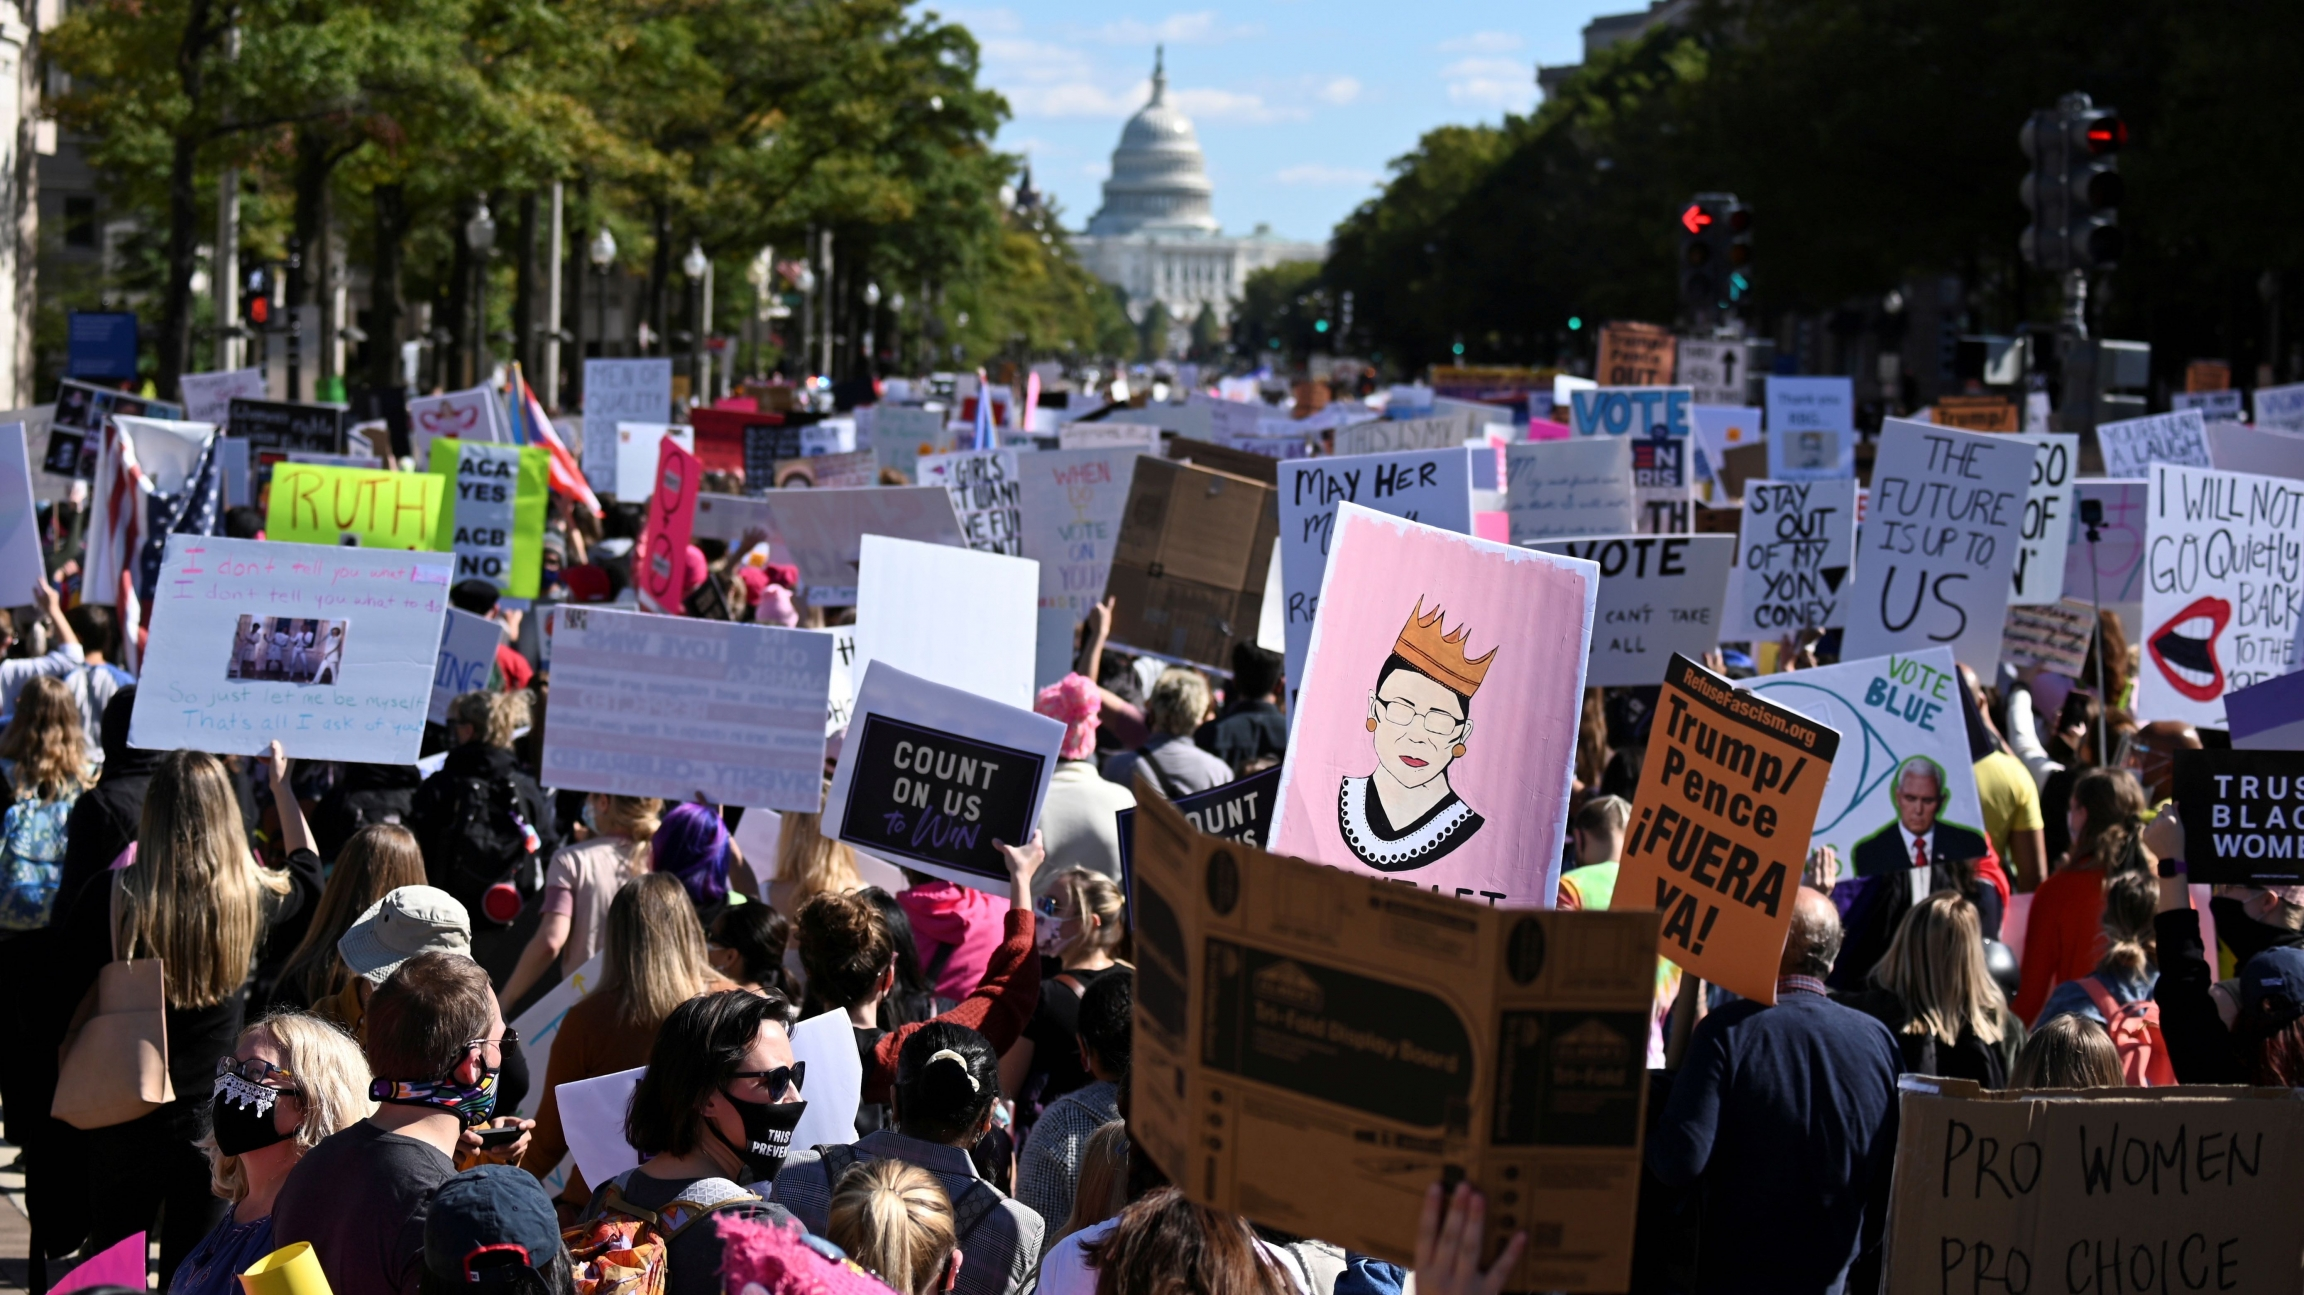 Women's March activists participate in a nationwide protest against US President Donald Trump's decision to fill the seat on the Supreme Court left by the passing of late Justice Ruth Bader Ginsburg before the 2020 election, in Washington,Oct.17, 2020.